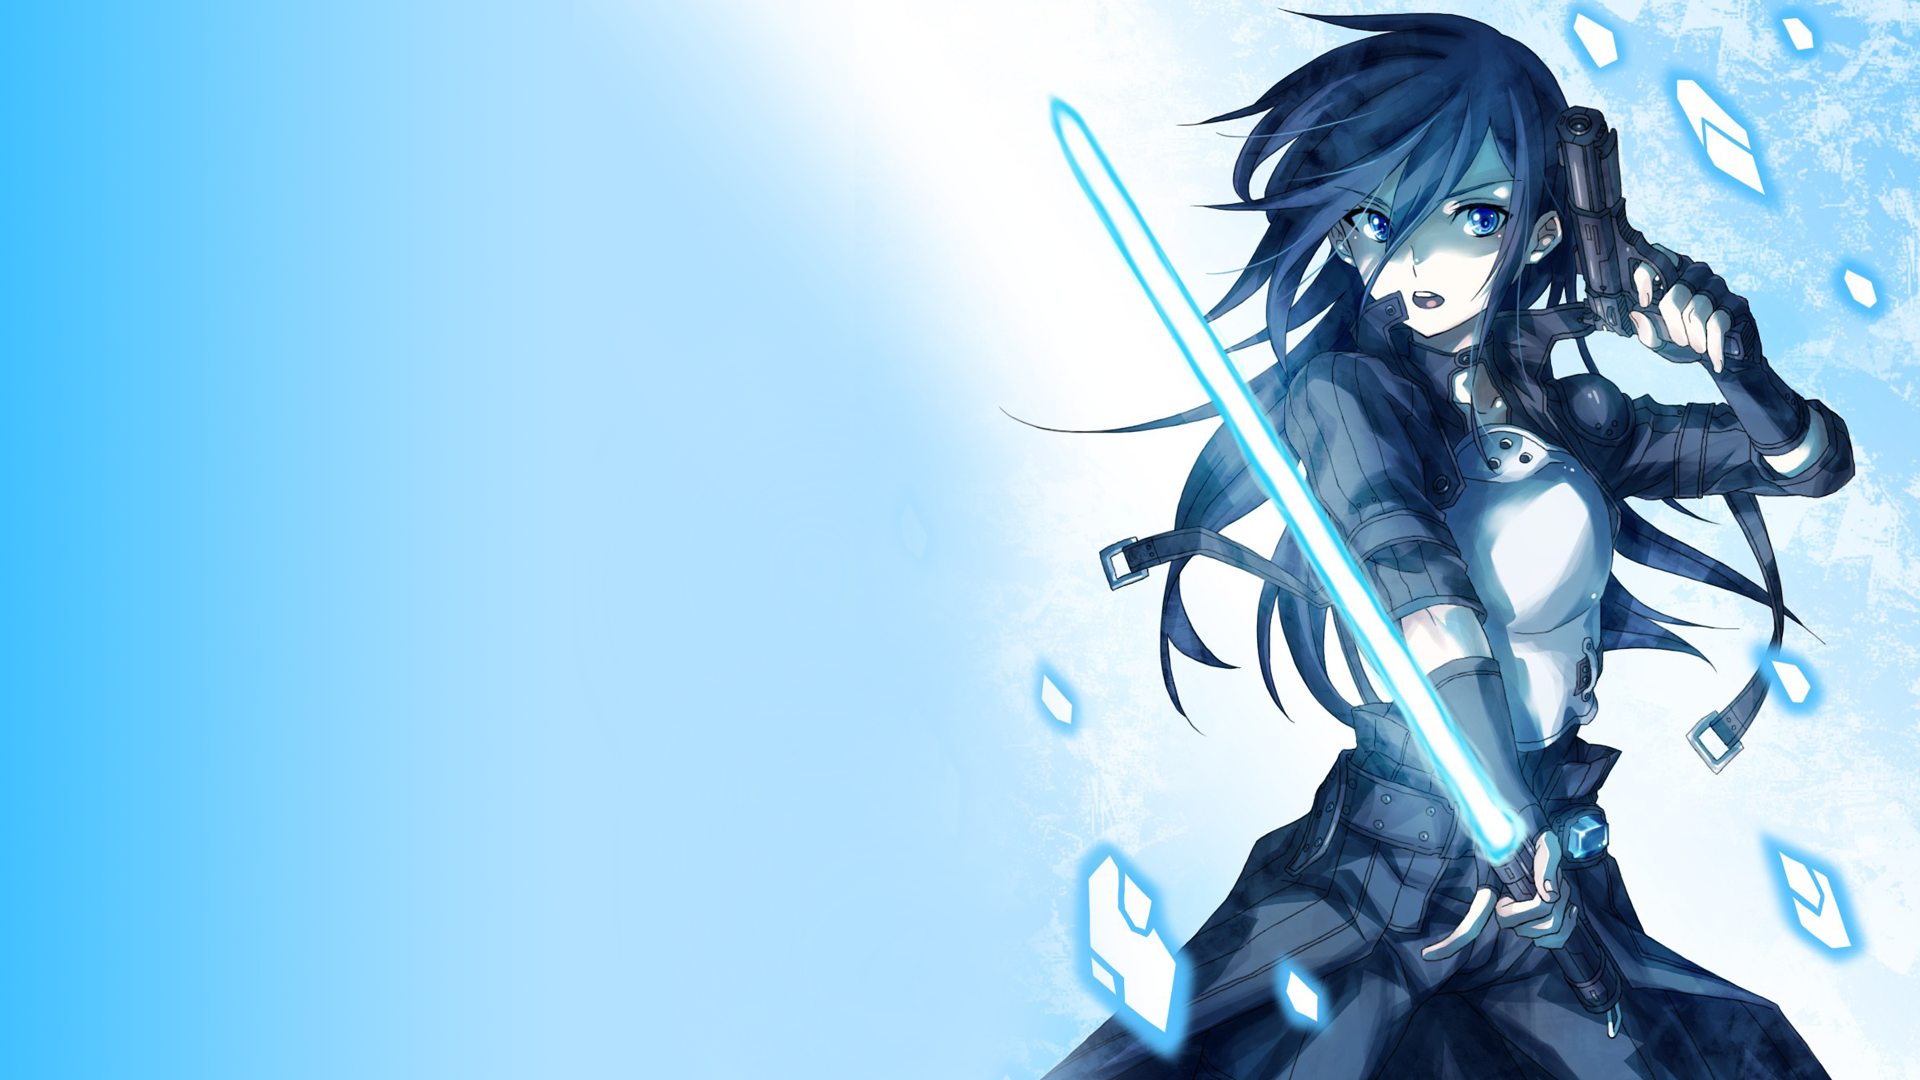 Anime Girl With Gun And Sword Wallpaper fitness